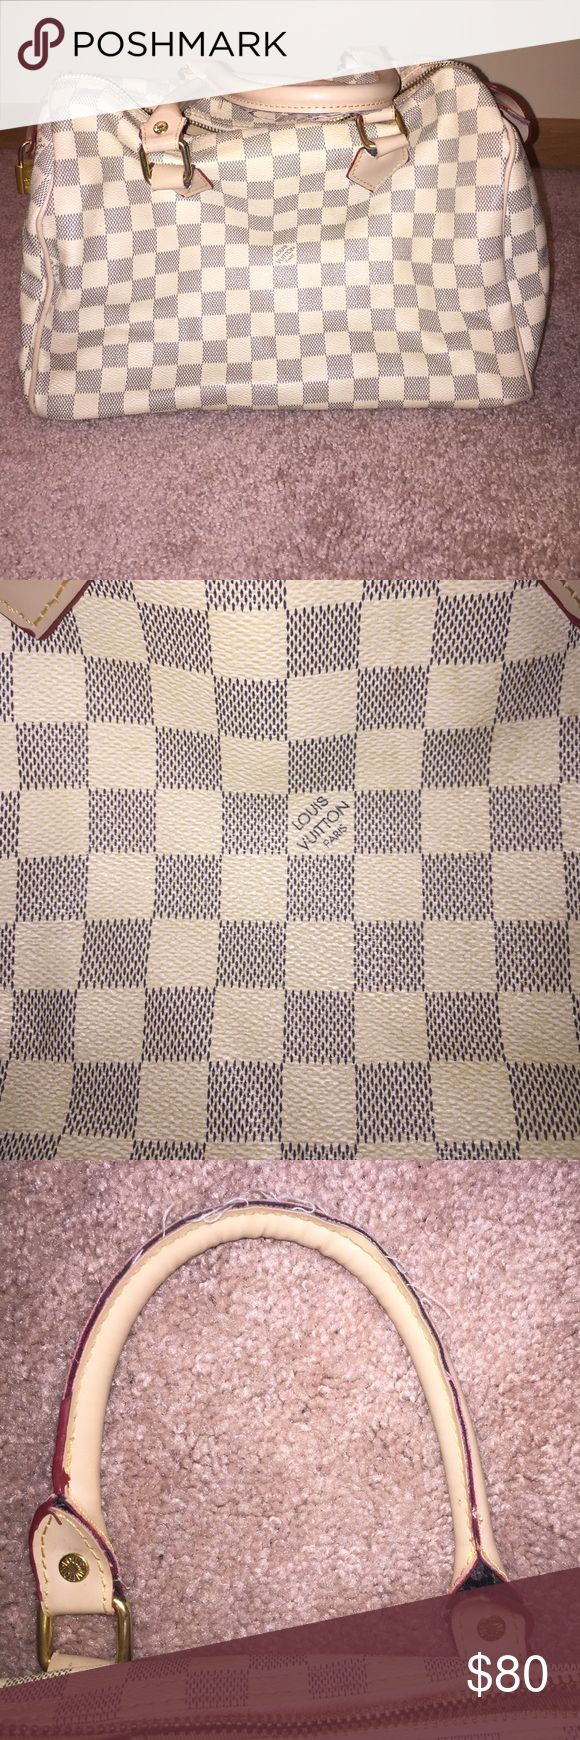 White Gray Checkered Bag/Purse/Speedy Inspired Speedy. Not authentic. Slight ware on handles as shown in photo. Zipper on inside and outside both work. Bags